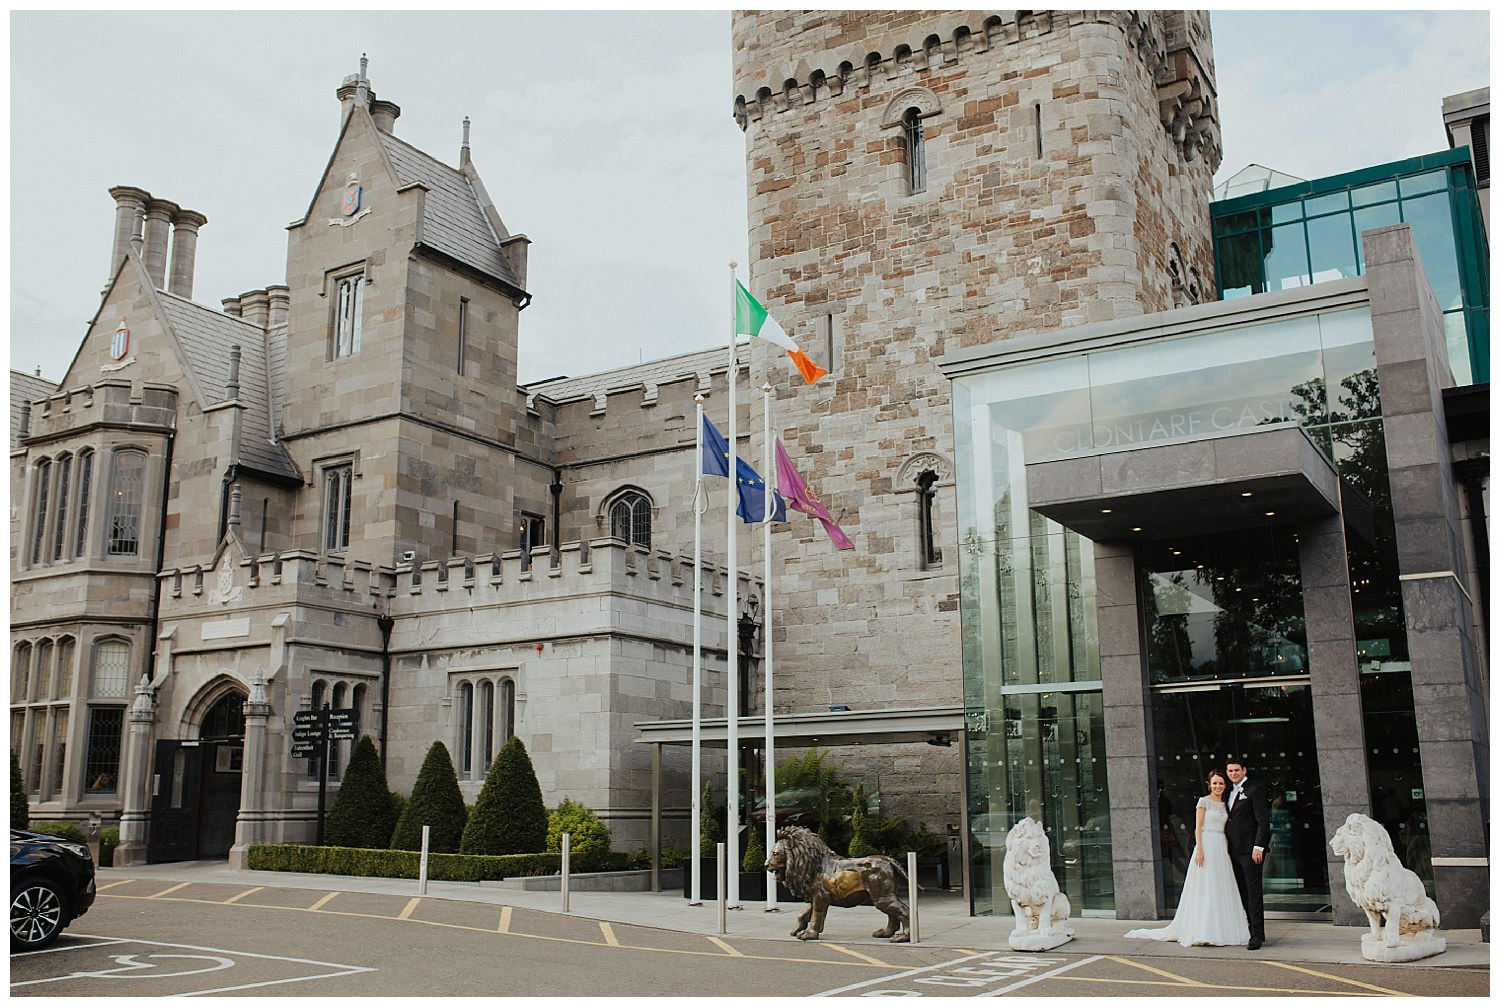 g+j_westbury_documentary_dublin_city_wedding_photographer52.jpg